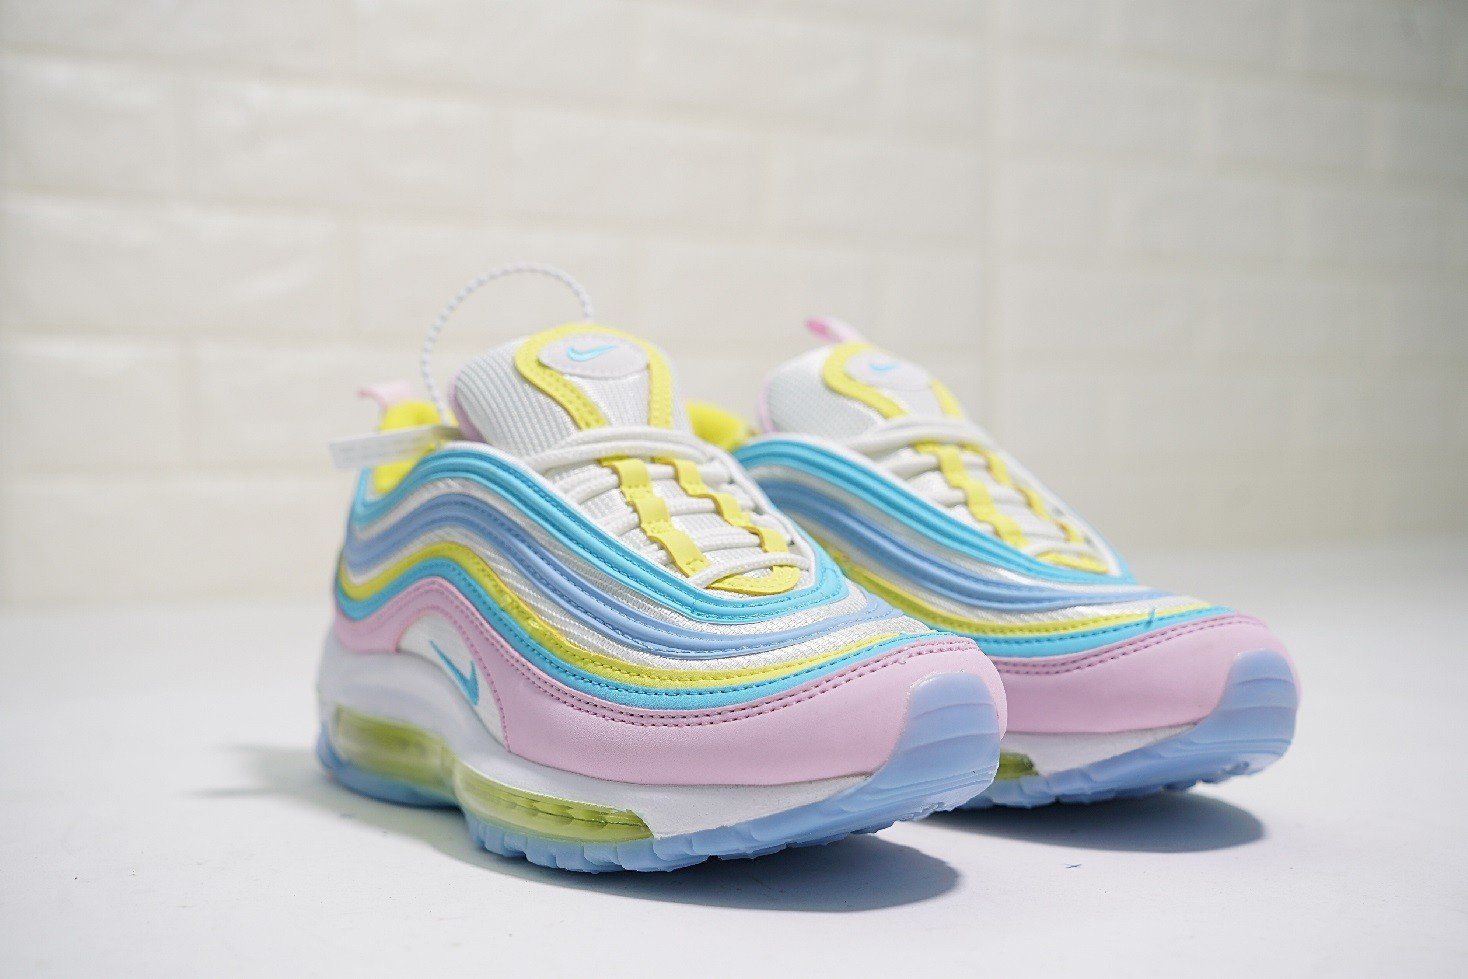 Where To Buy Women Nike Air Max 97 Pink Blue Yellow Corduroy Nike Air Max For Women Nike Air Max 97 Air Max 97